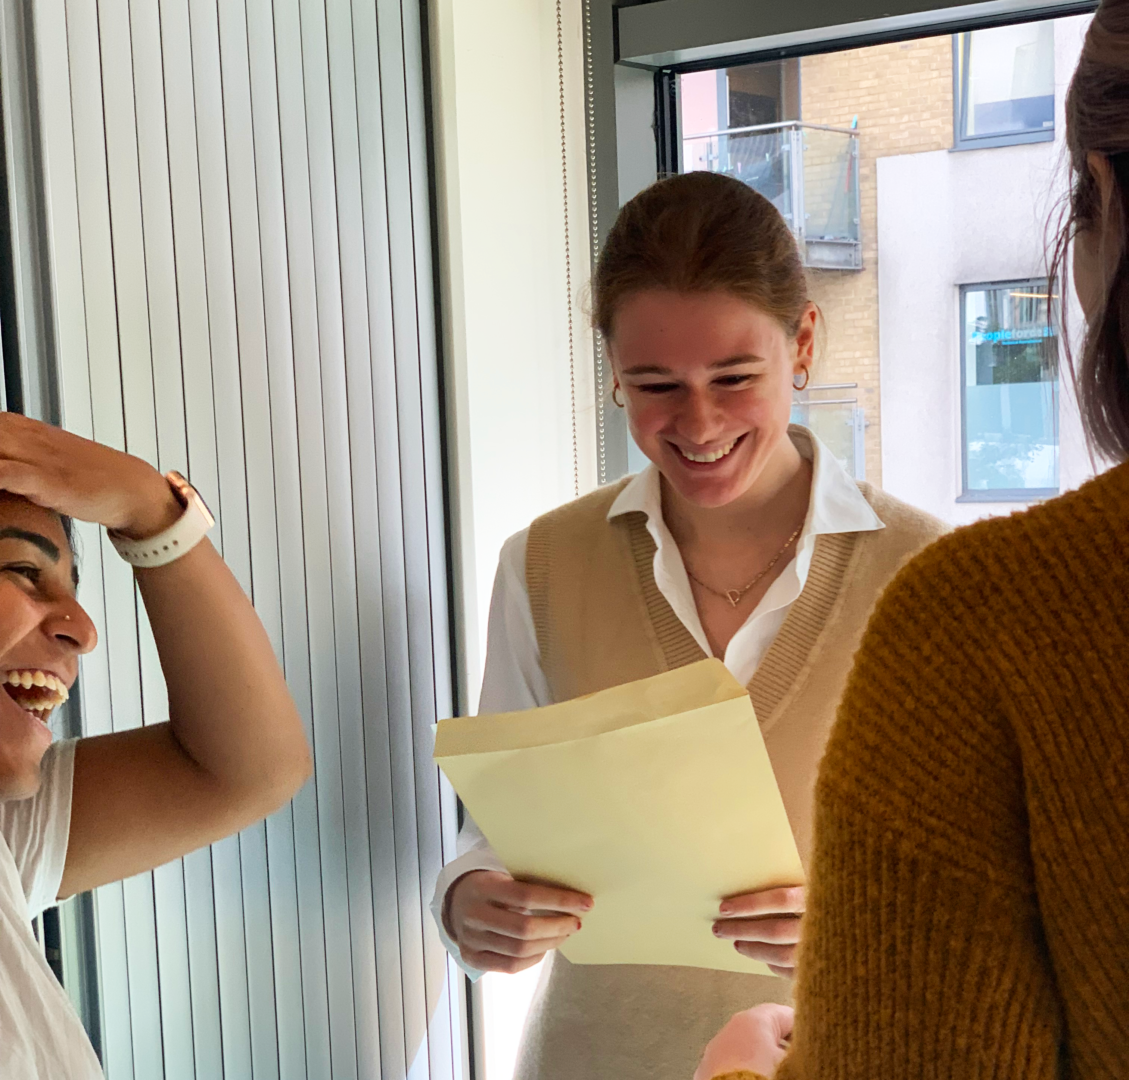 Three women standing in a circle smiling. In focus is Emily, a white woman wearing a white shirt, who is staring at an envelope and smiling. To the right is Ruksar, a brown woman, who is pushing hair out of her face and smiling.